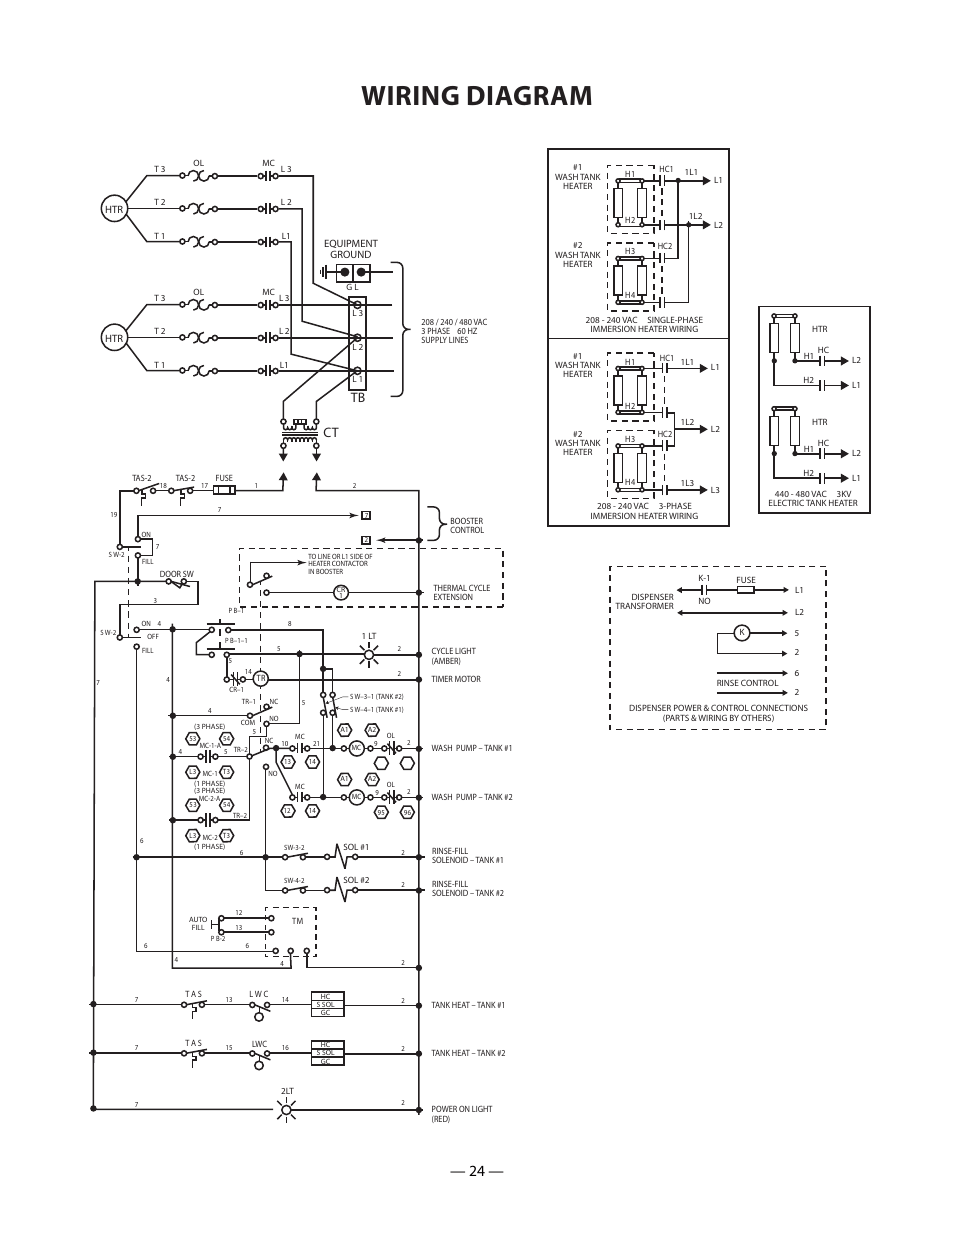 hight resolution of wiring diagram ct tb blakeslee dd 8 user manual page 24 28